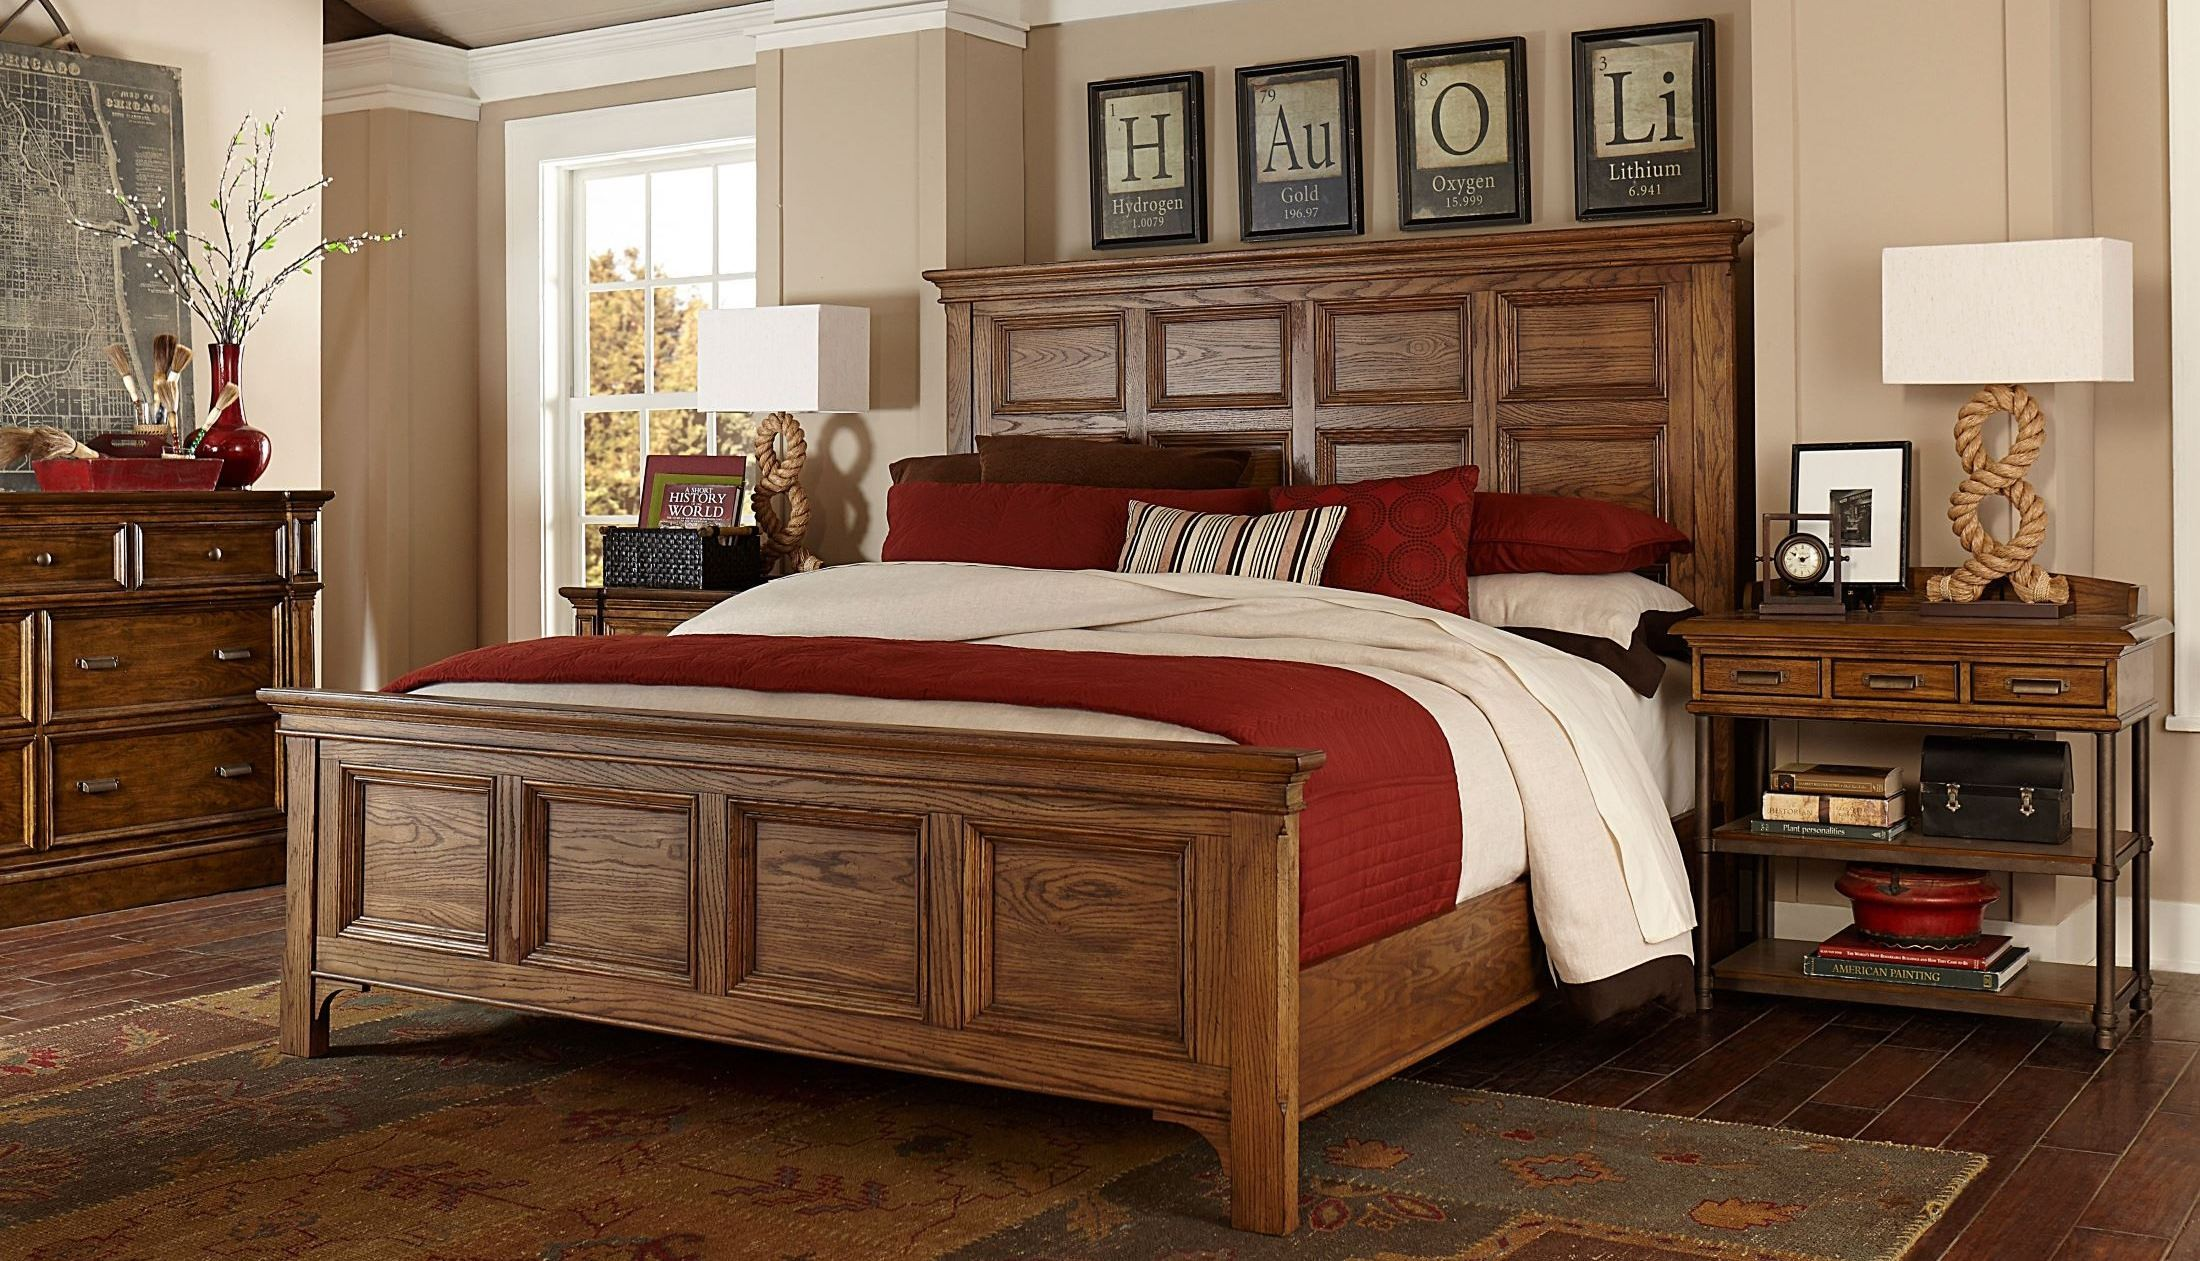 New Vintage Brown Panel Bedroom Set From Broyhill 4808 270 271 480 Coleman Furniture